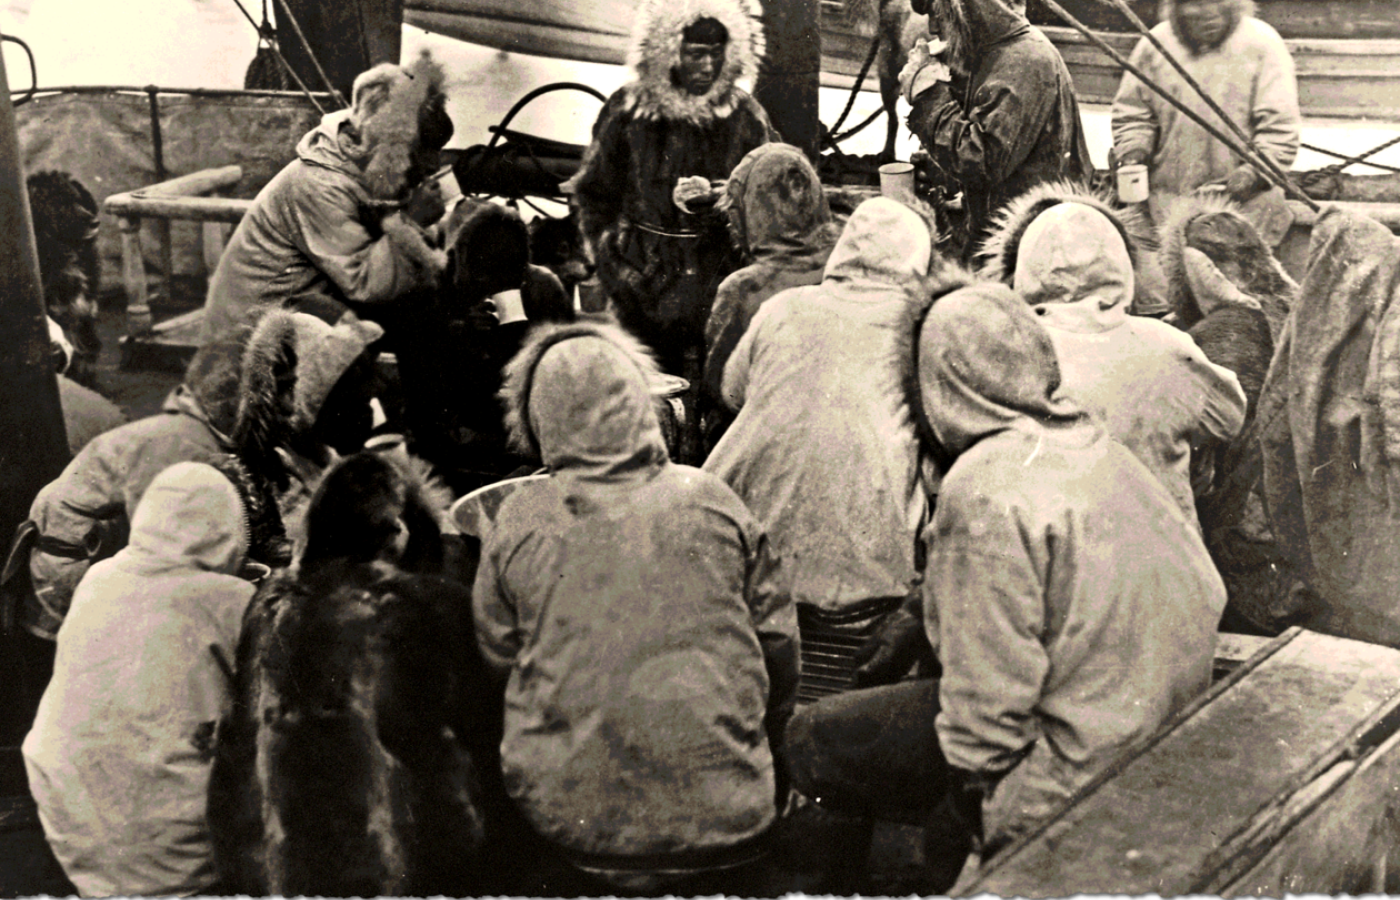 An historical black and white image of Inuvialuit on exploration ship in the early 1900's